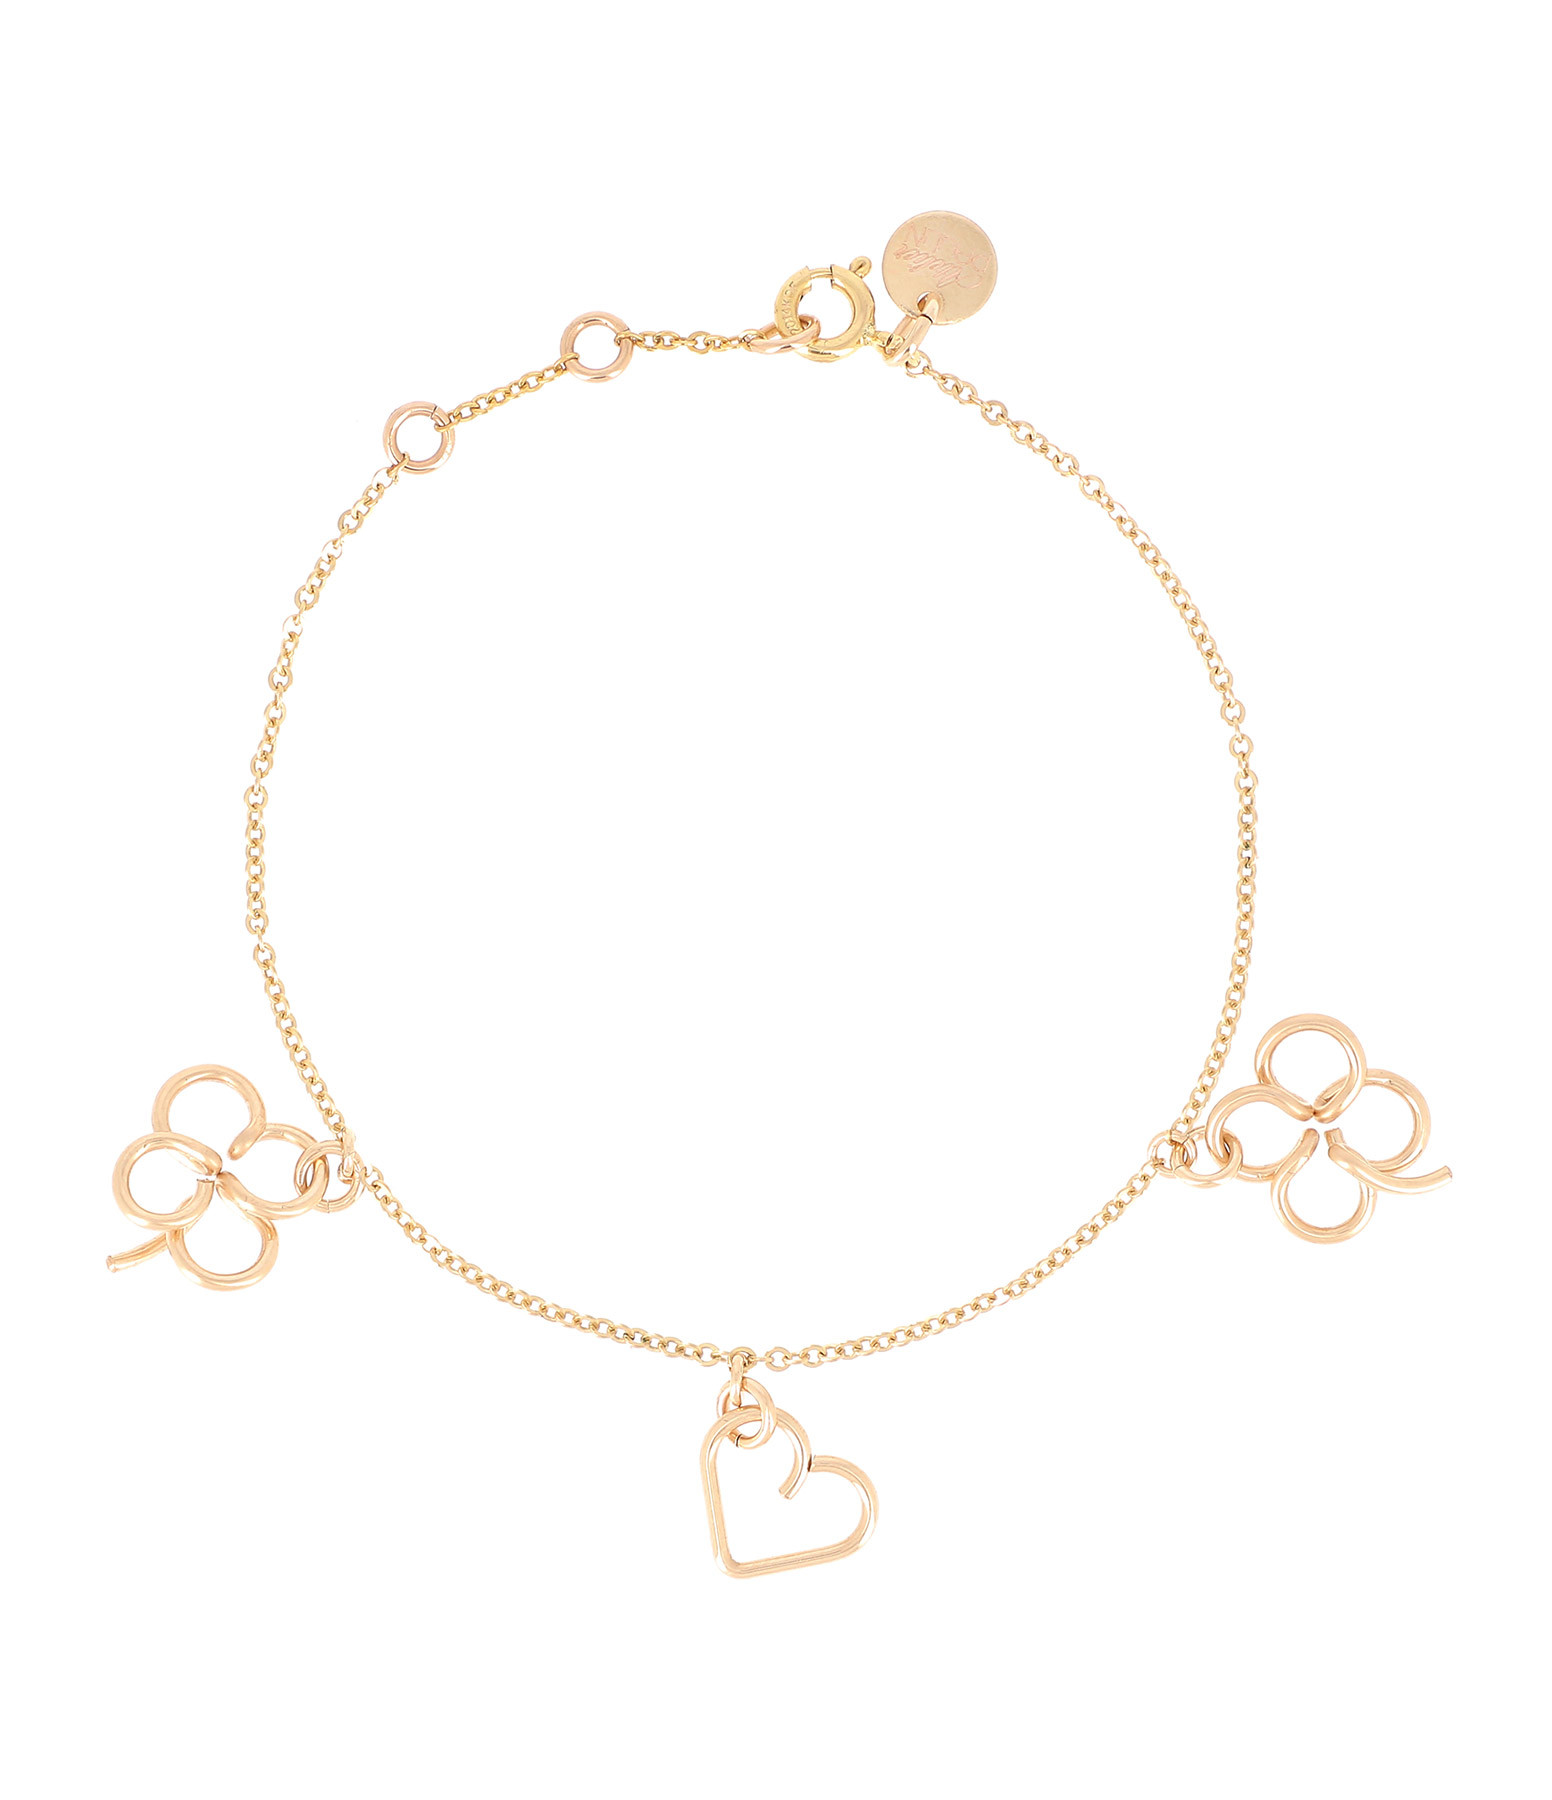 ATELIER PAULIN - Bracelet Lucky Three Gold Filled 14K, Collection Charms